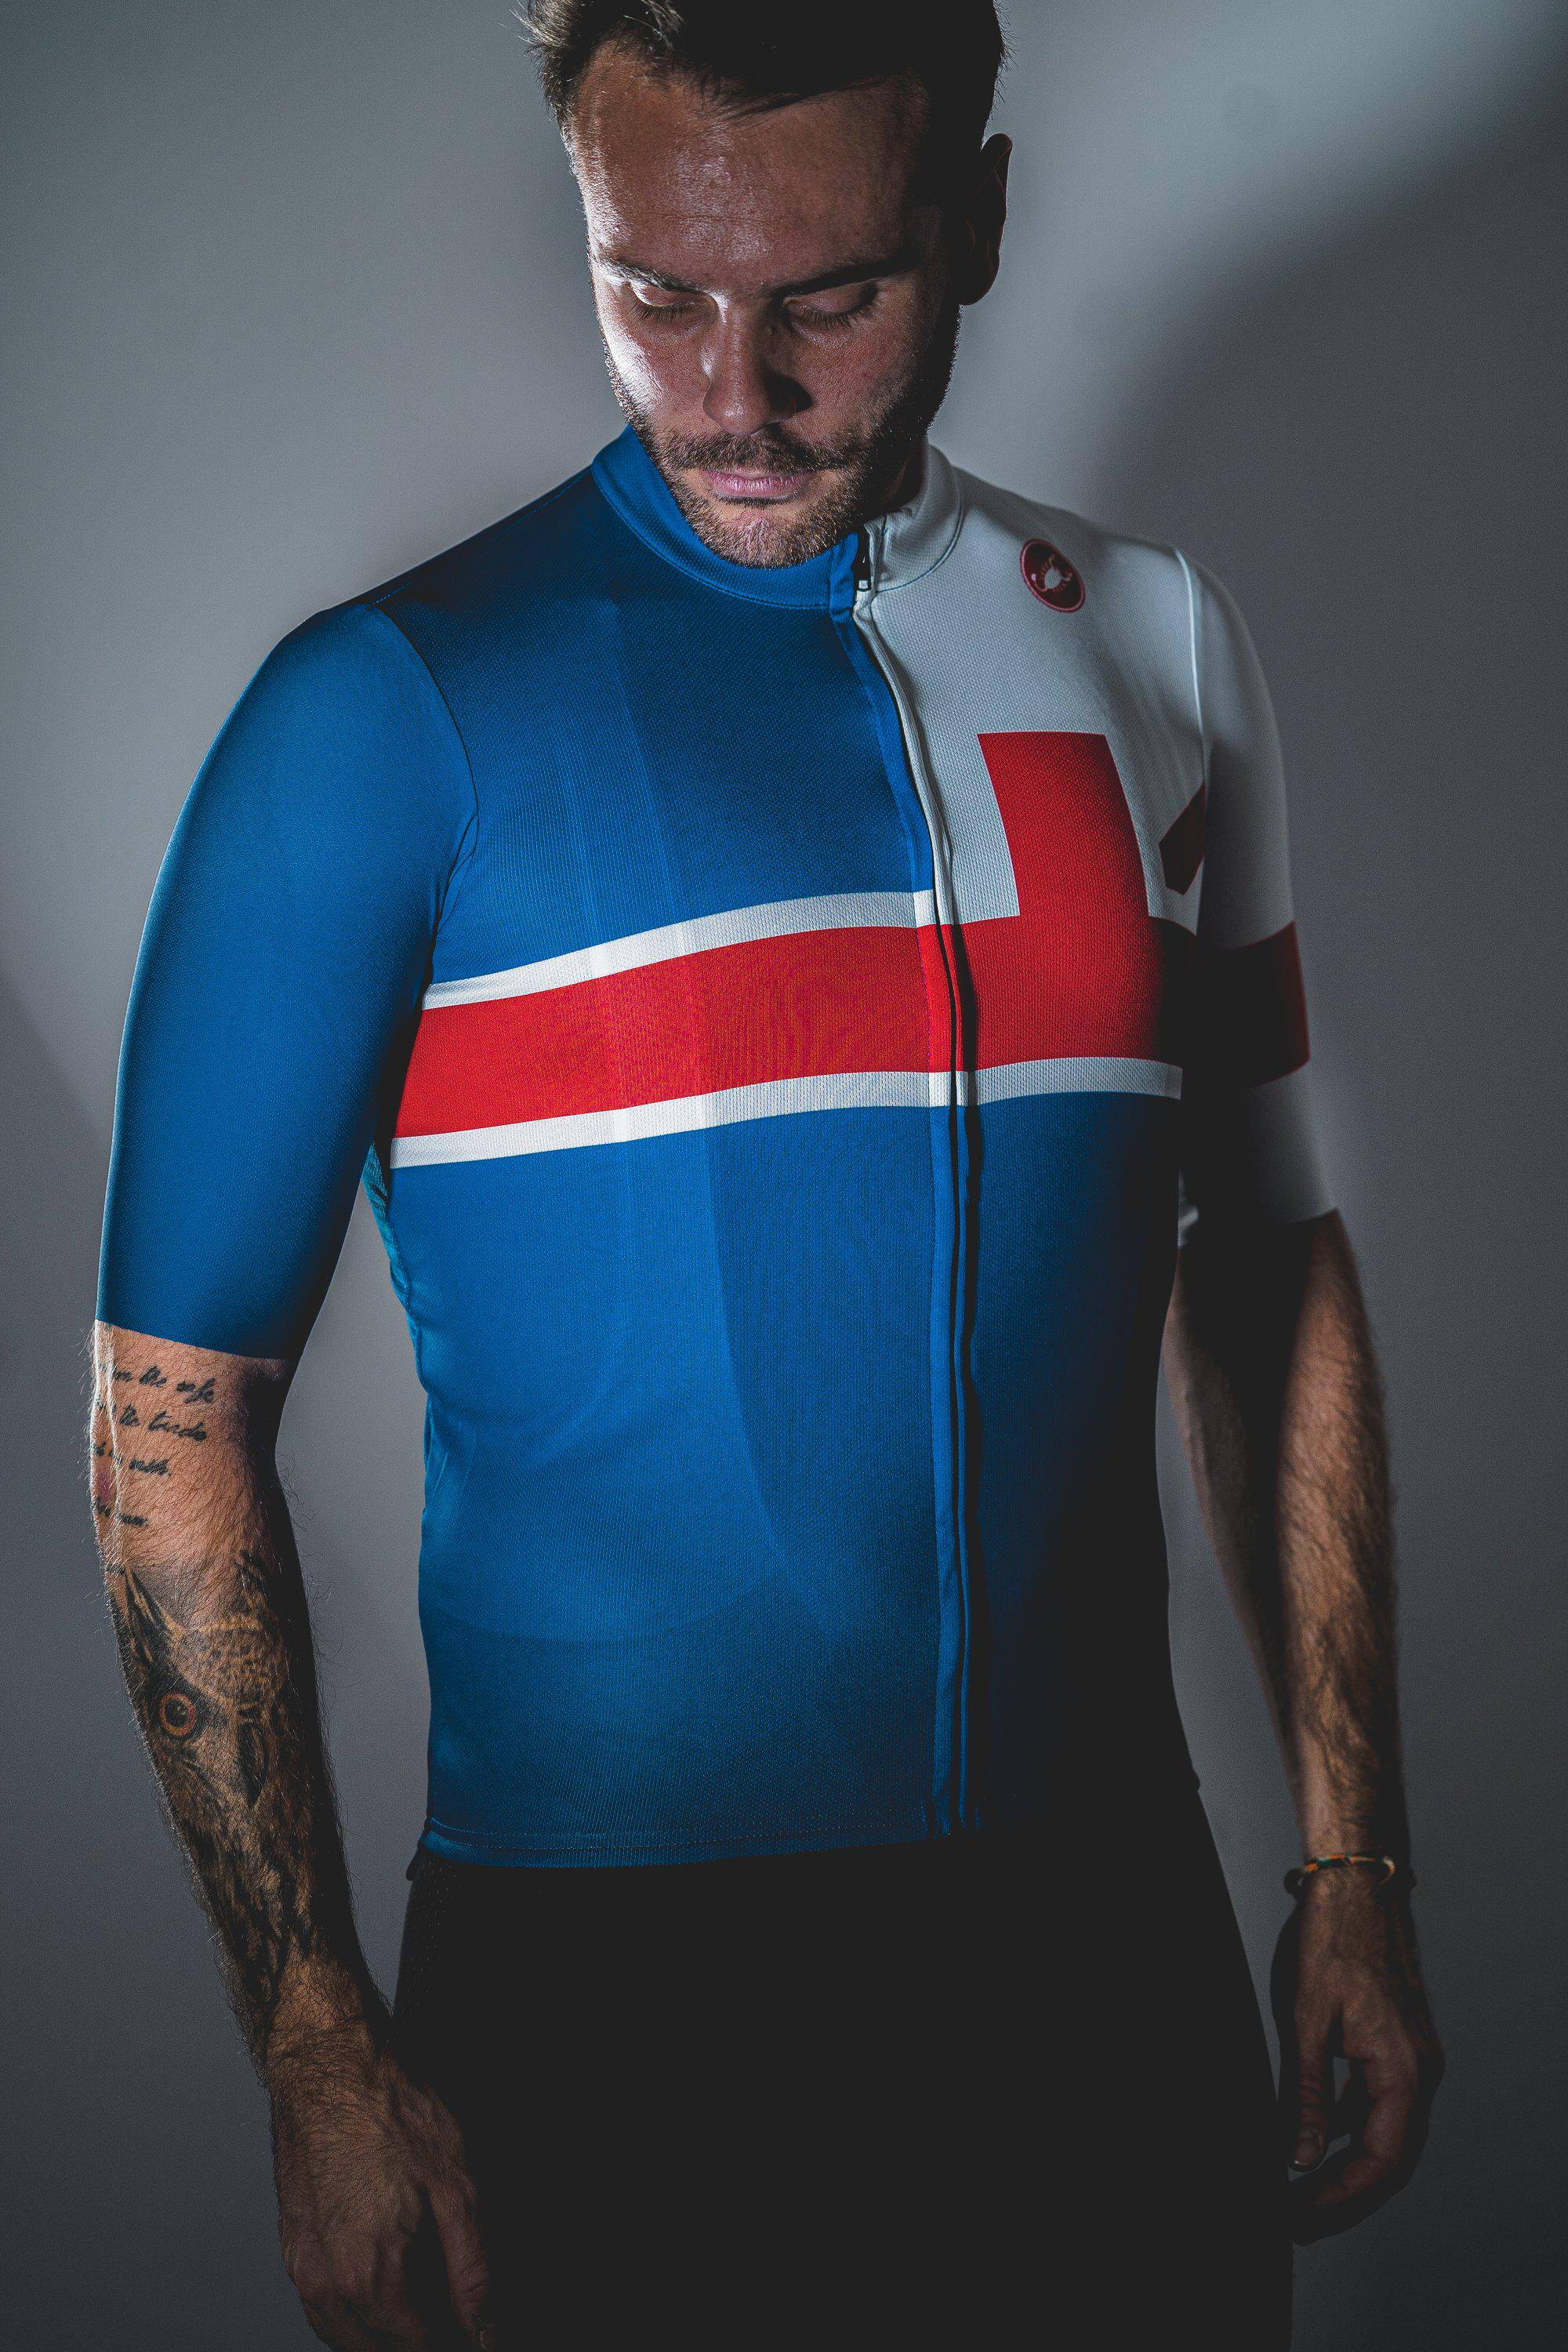 Castelli-Castelli World Champs Squadra Jersey - UK-L-UK-CS4300412A397064-saddleback-elite-performance-cycling